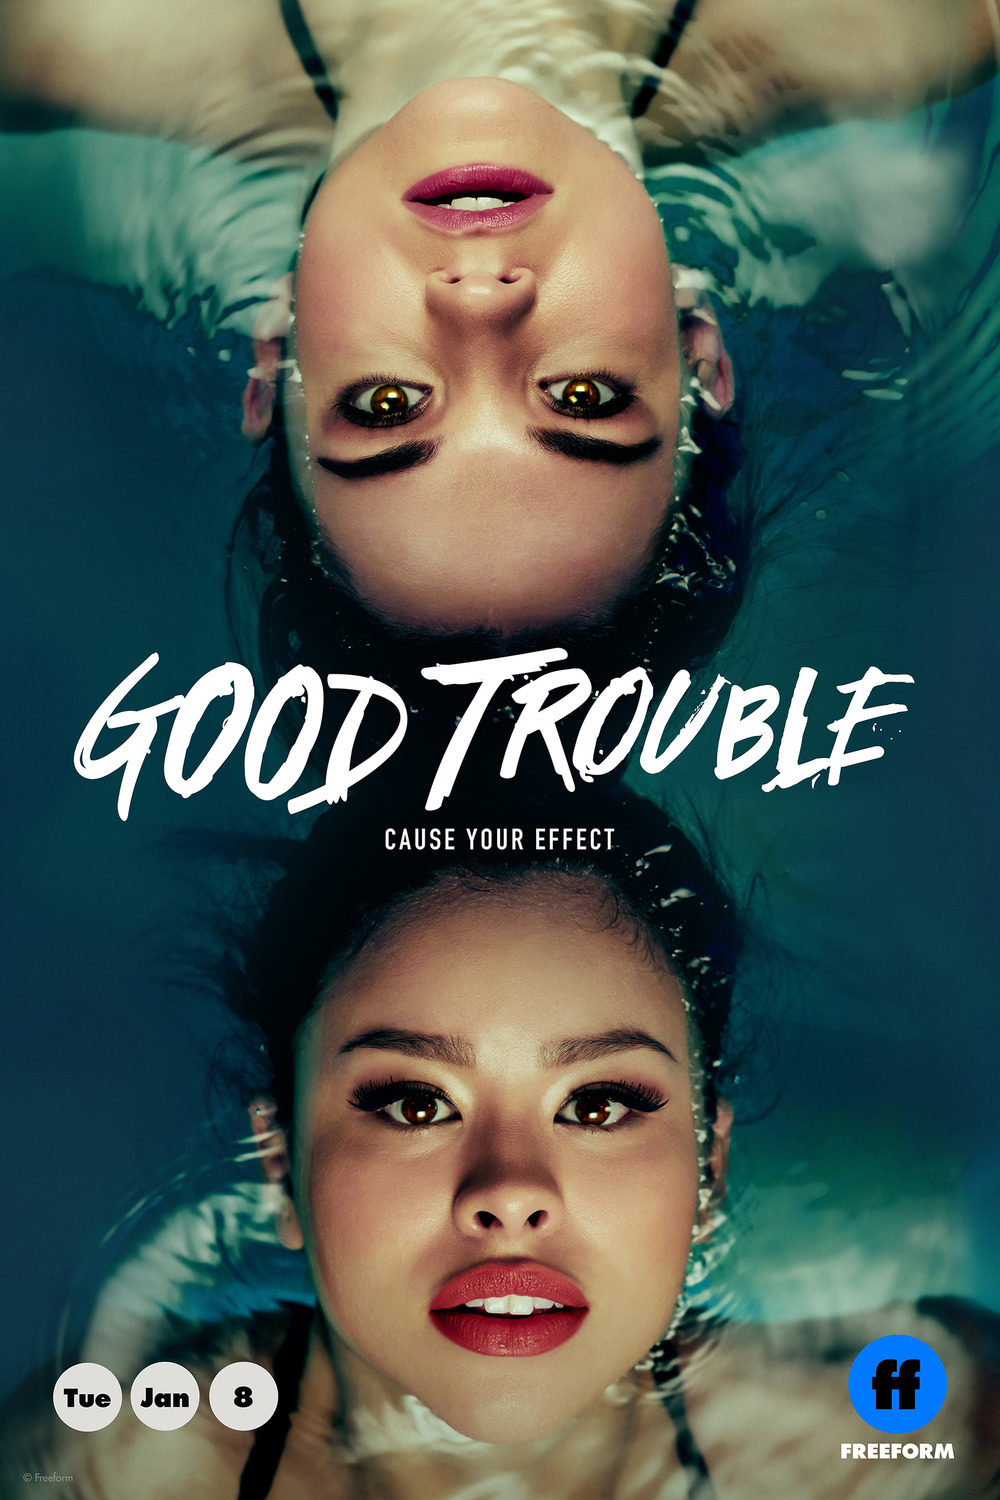 Geros bėdos (1 Sezonas) / GOOD TROUBLE Season 1